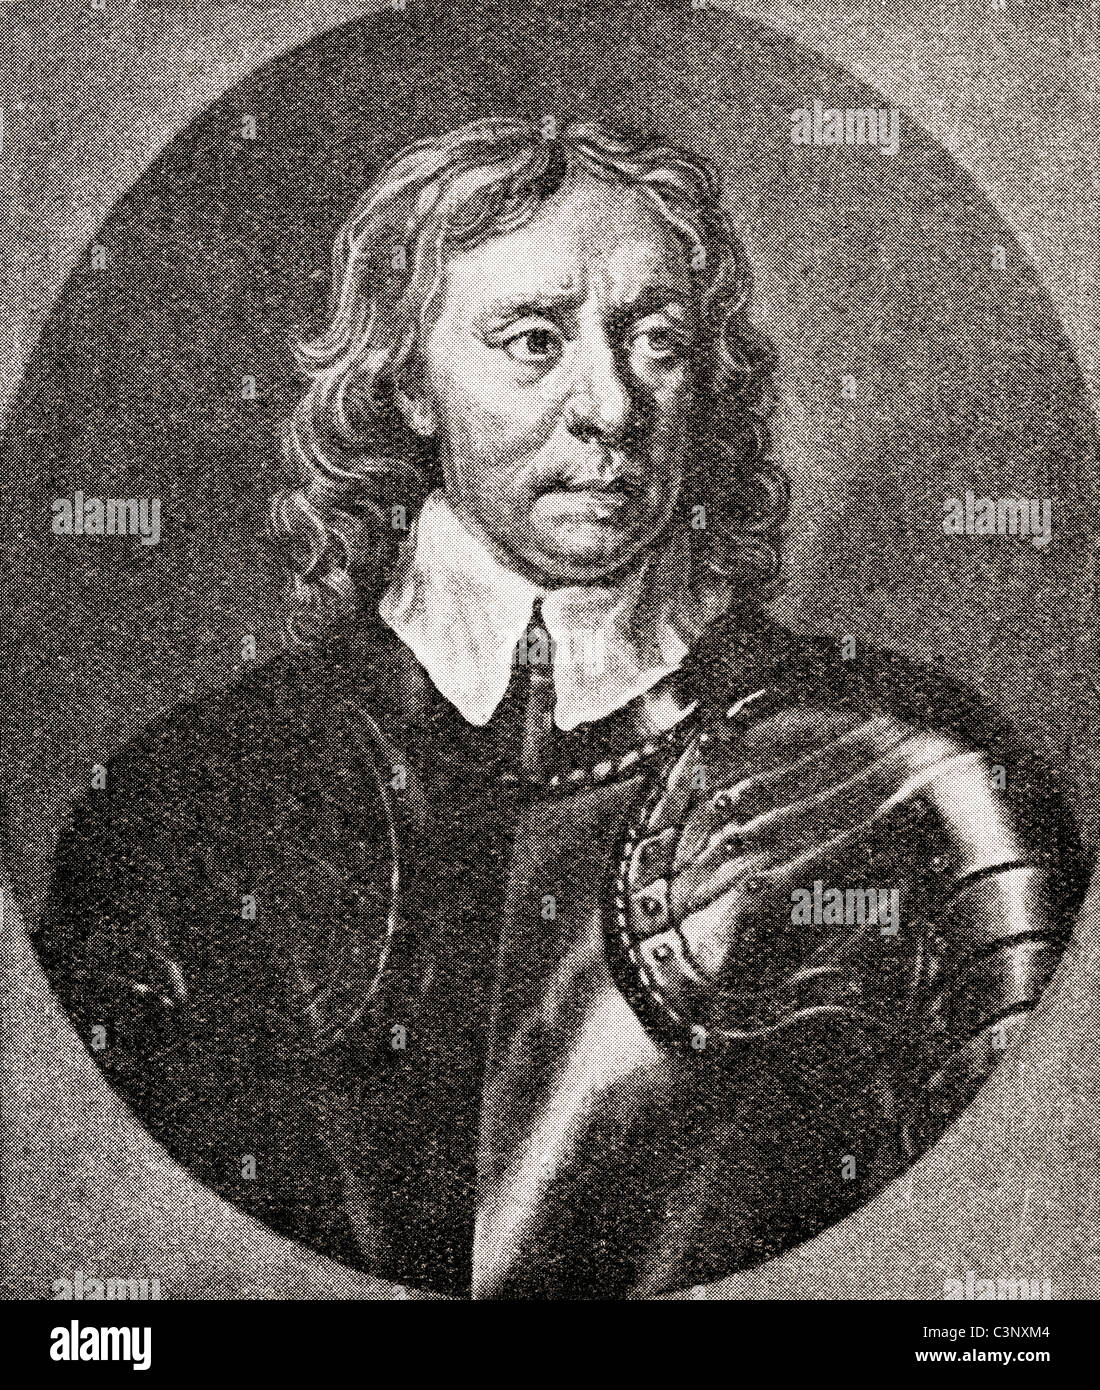 Oliver Cromwell, 1599 – 1658. English military and political leader and Lord Protector of England, - Stock Image